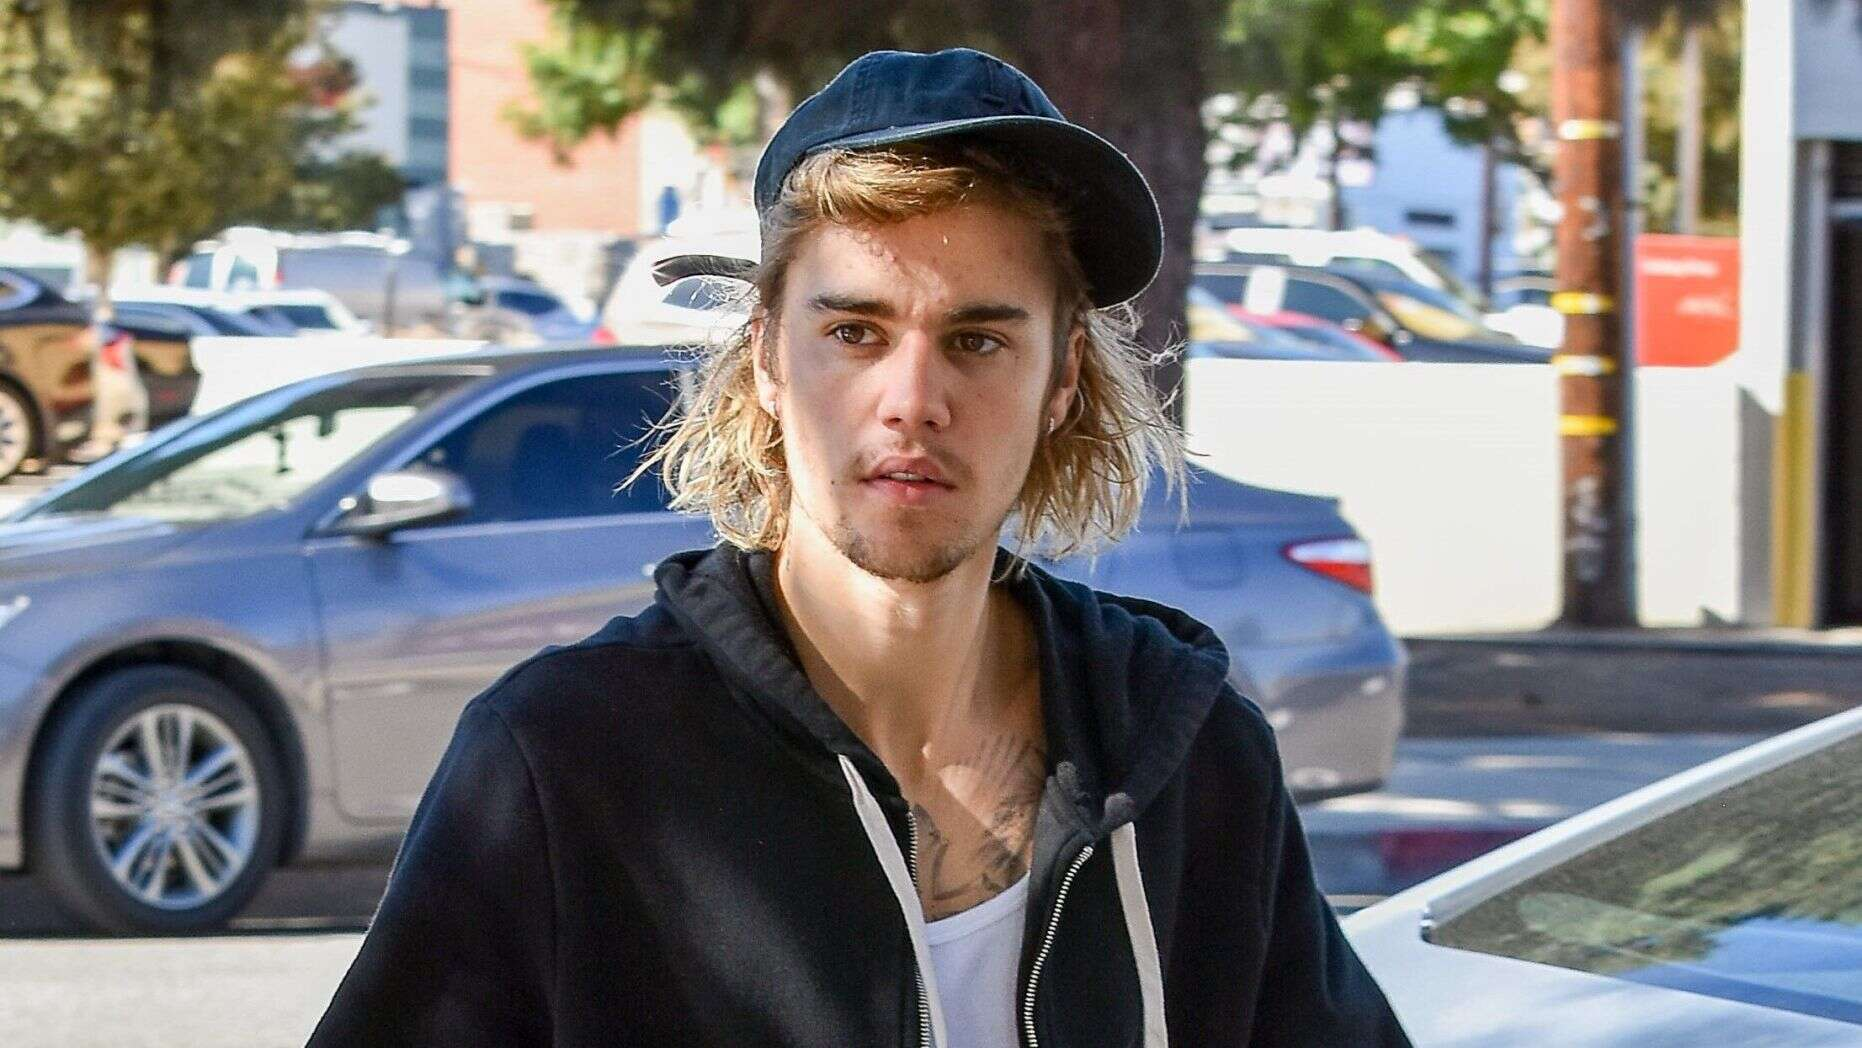 justin bieber refutes sexual assault allegation with series of evidence